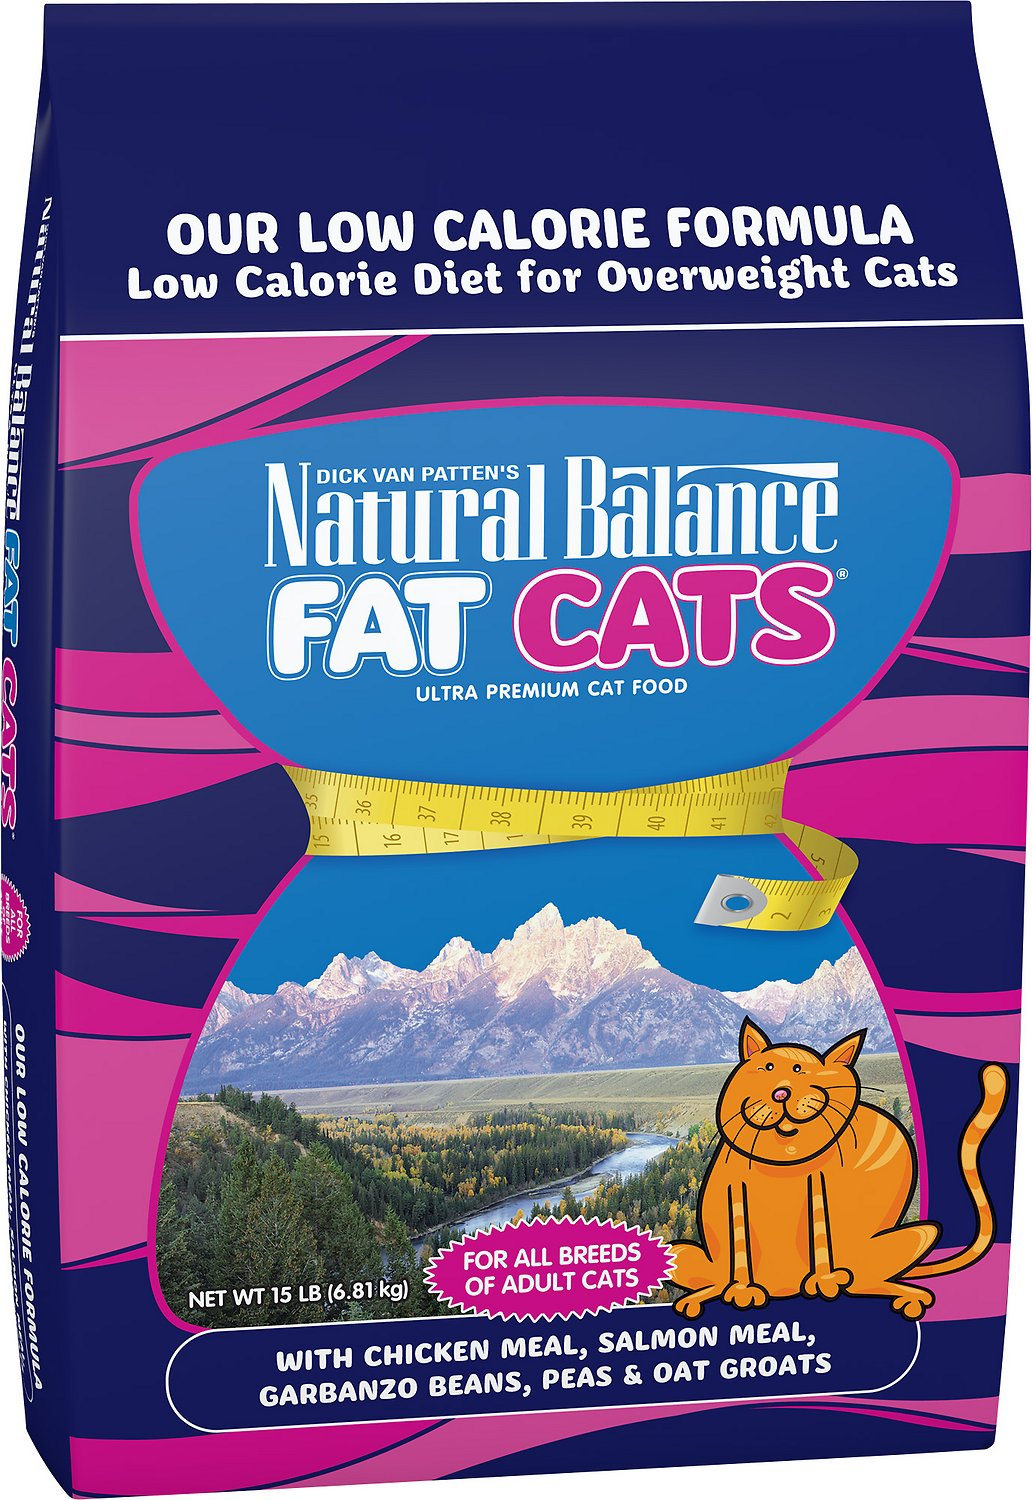 Natural Balance Fat Cats with Chicken Meal, Salmon Meal, Garbanzo Beans, Peas & Oatmeal Dry Cat Food Image